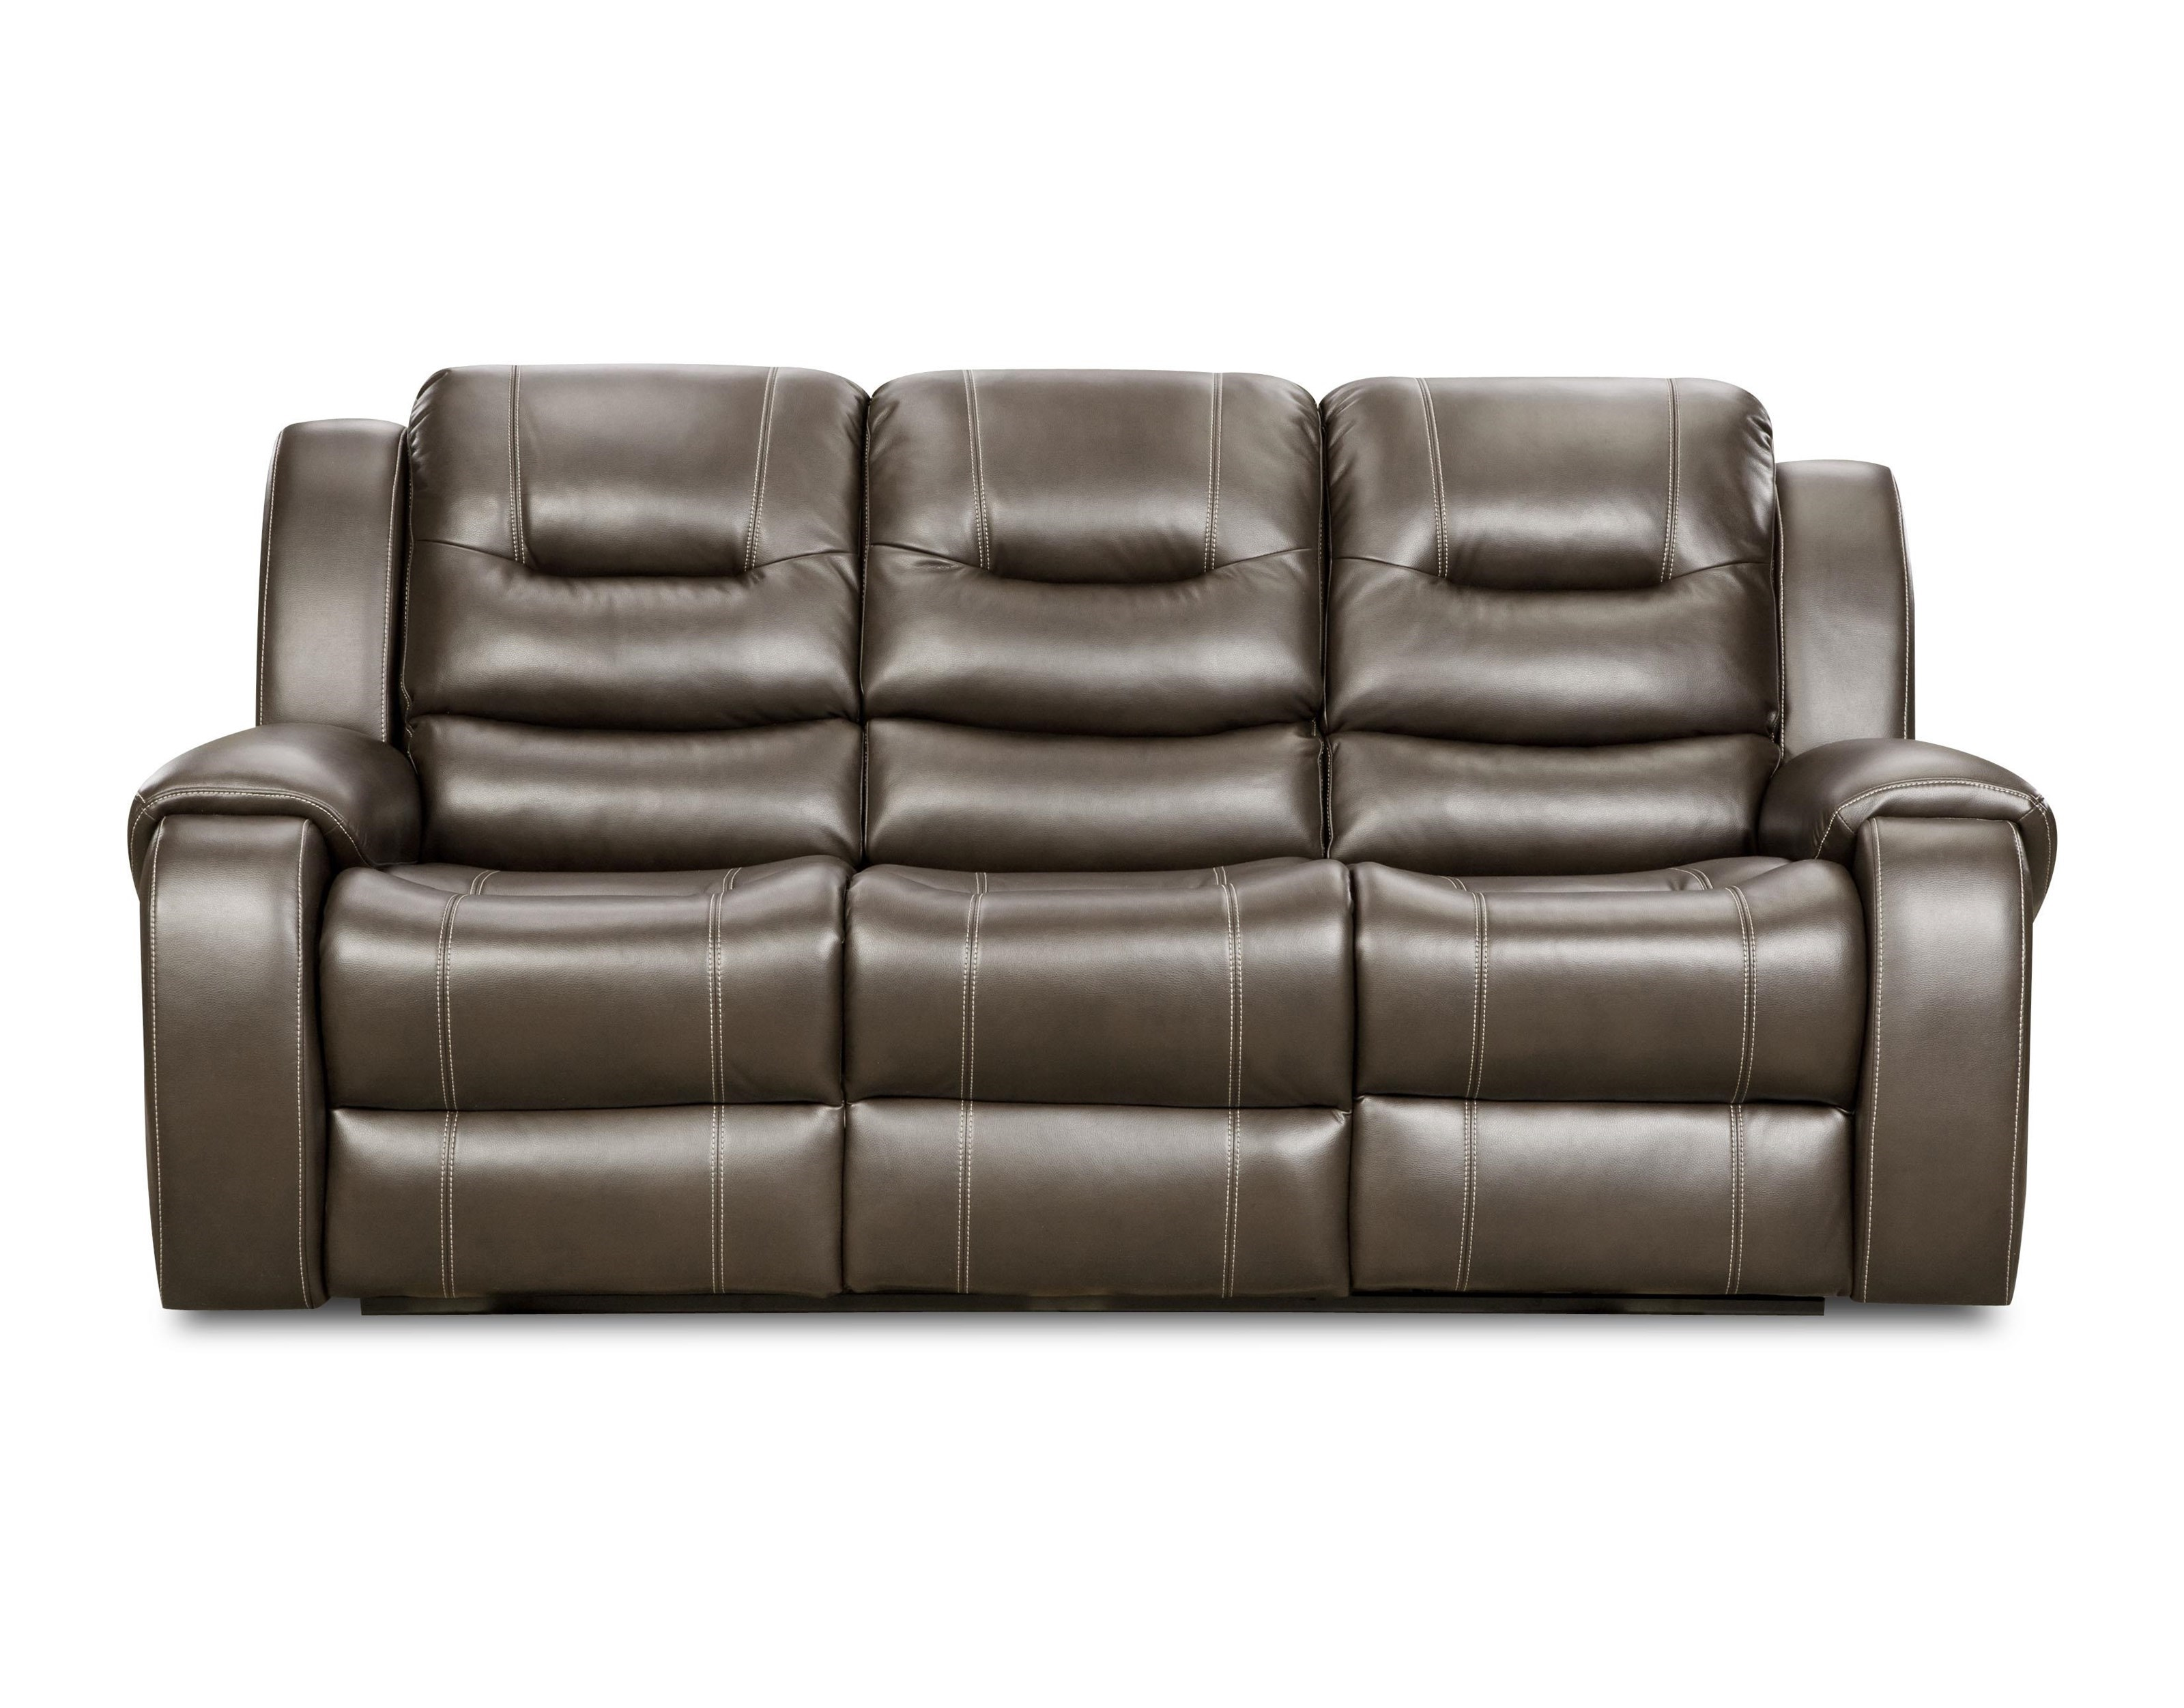 Corinthian JamestownJamestown Smoke Reclining Sofa ...